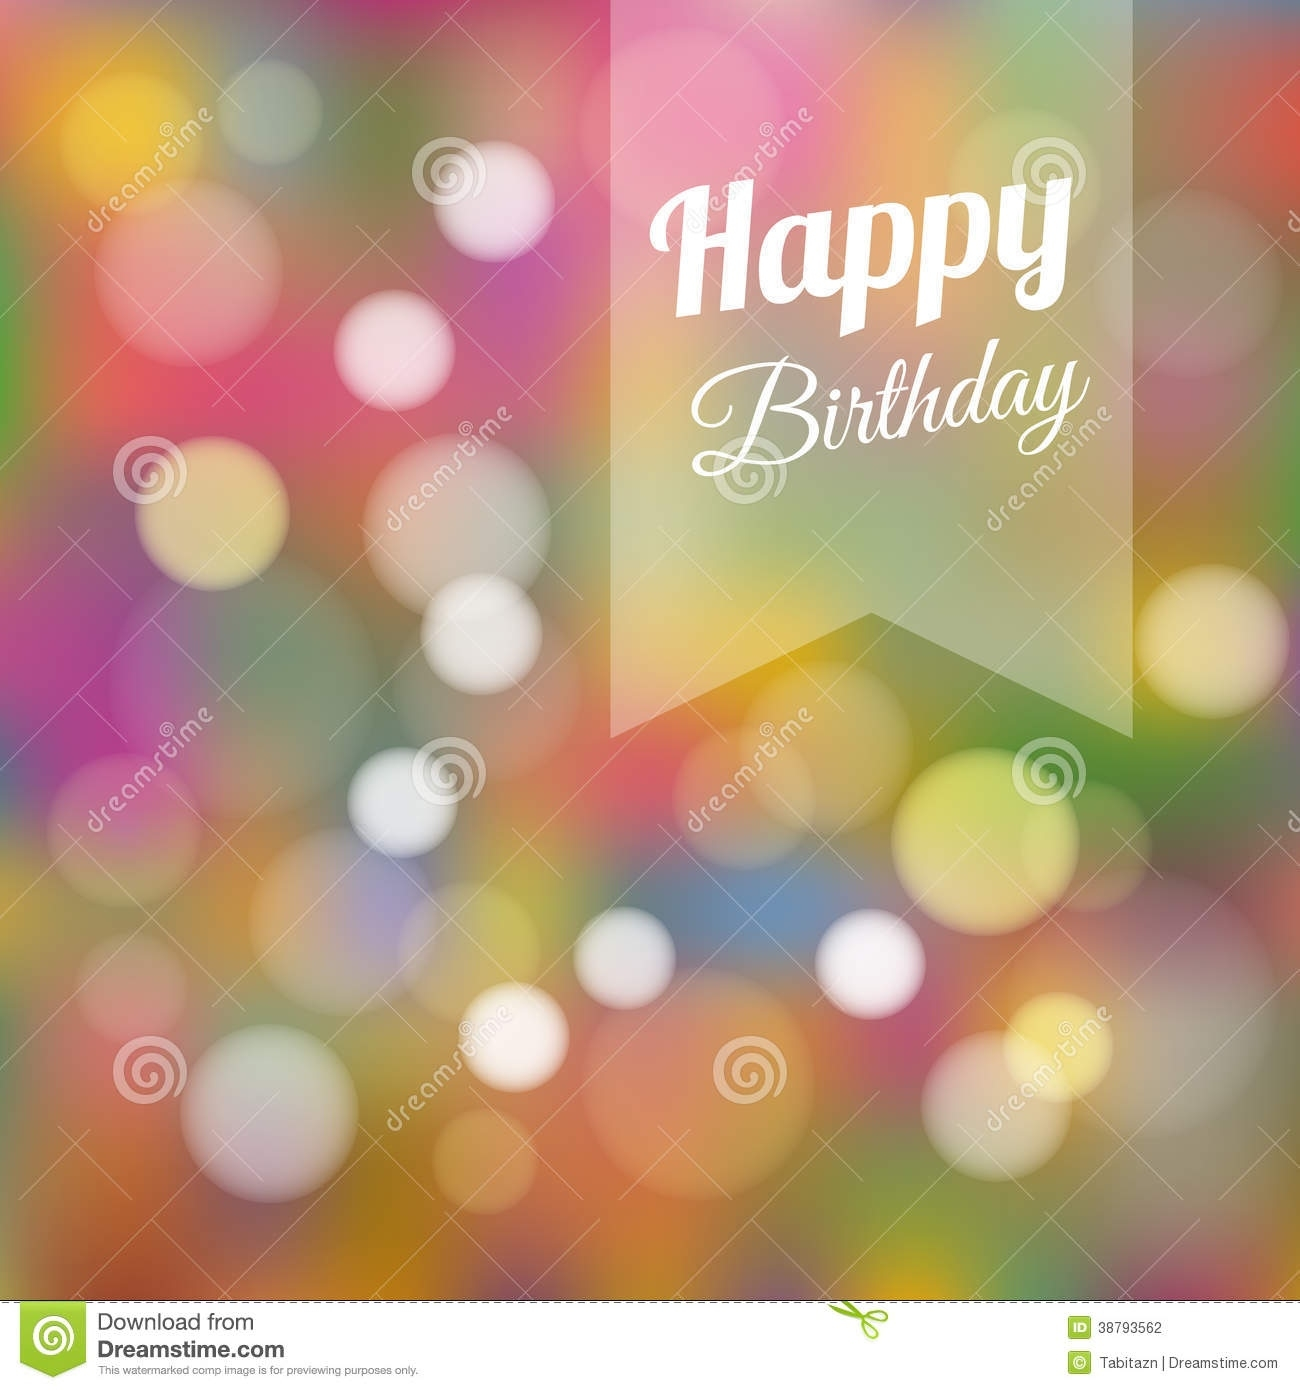 background birthday invitation ; birthday-card-background-okl-mindsprout-co-pertaining-to-birthday-invitation-card-background